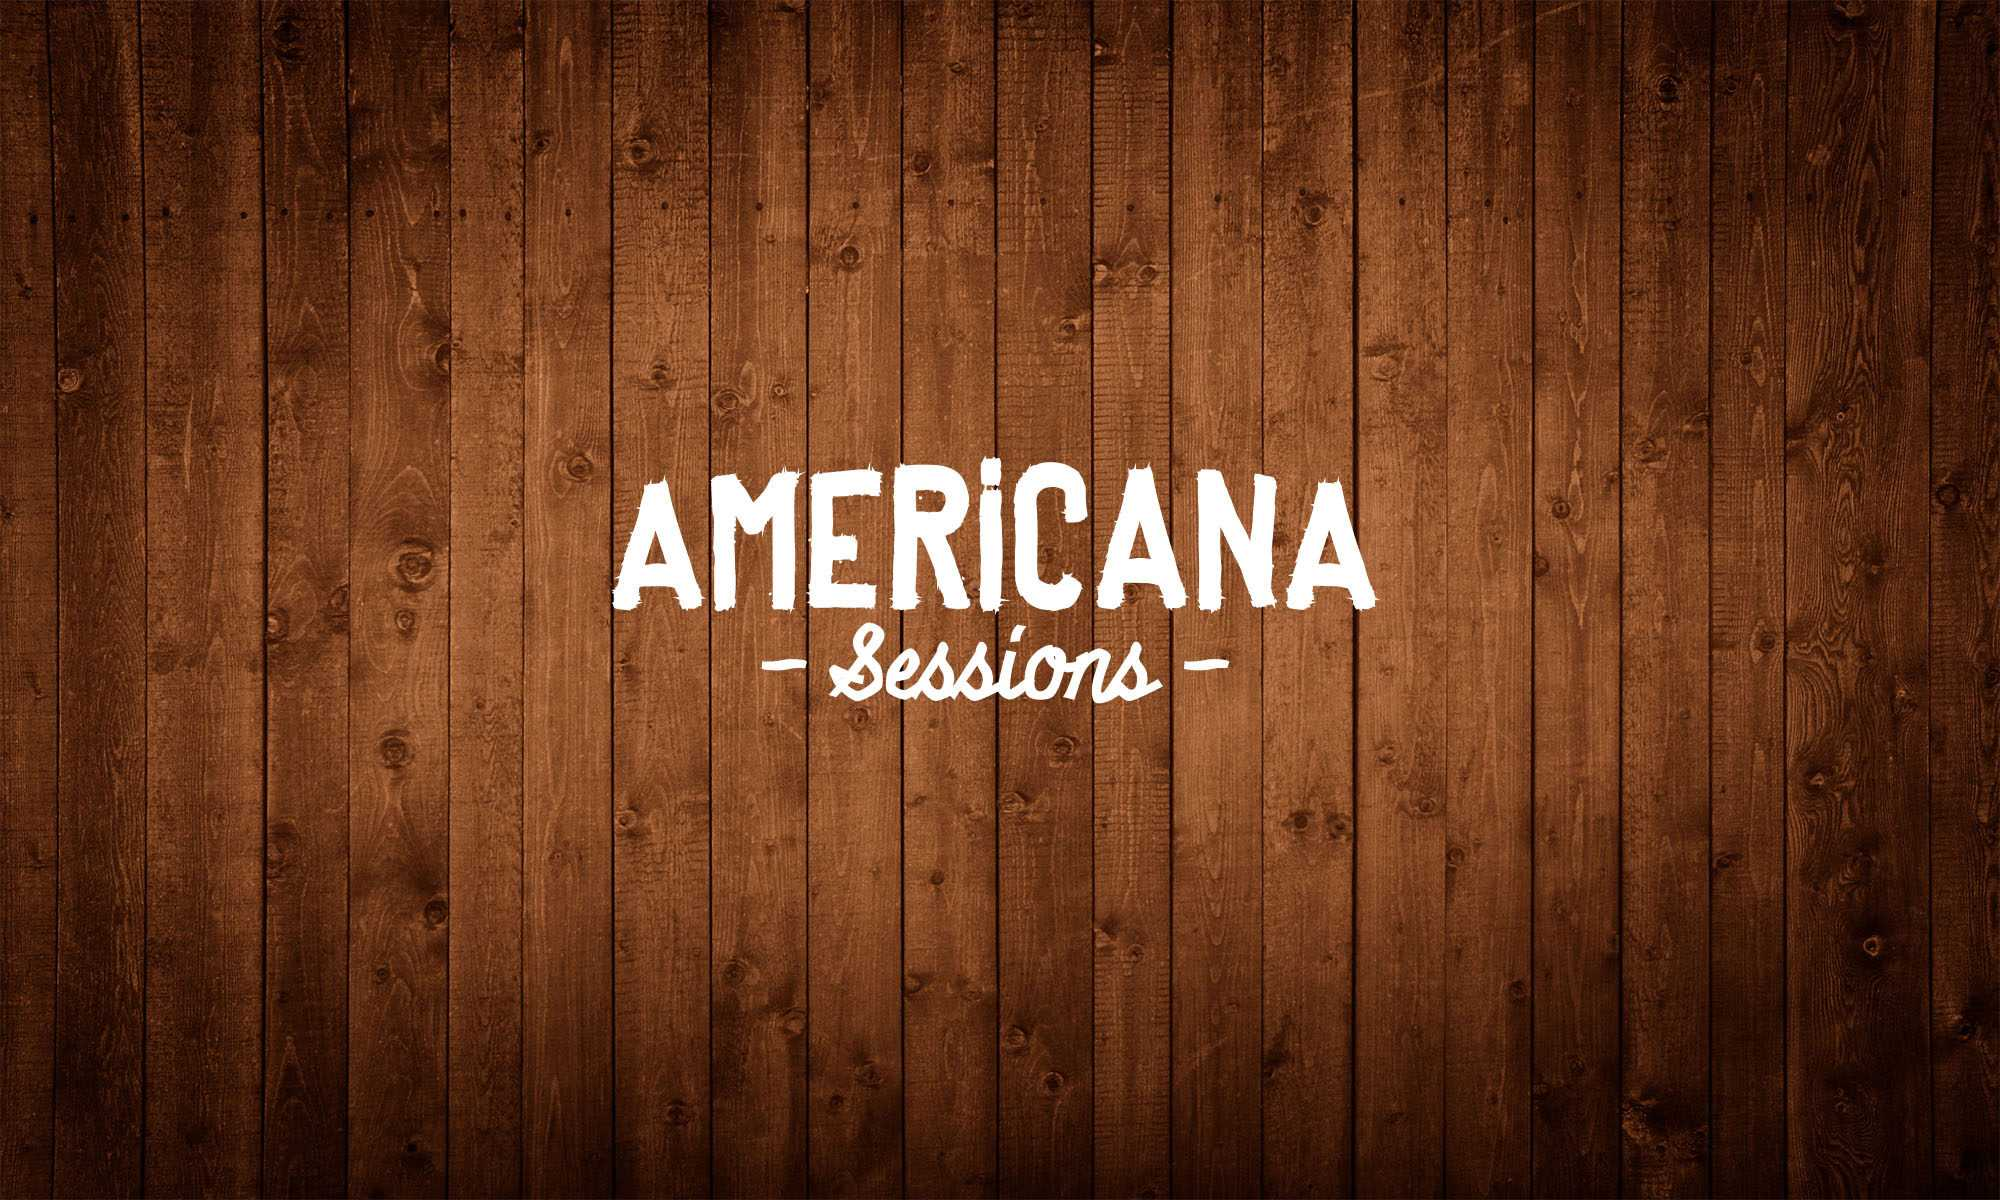 Americana Sessions